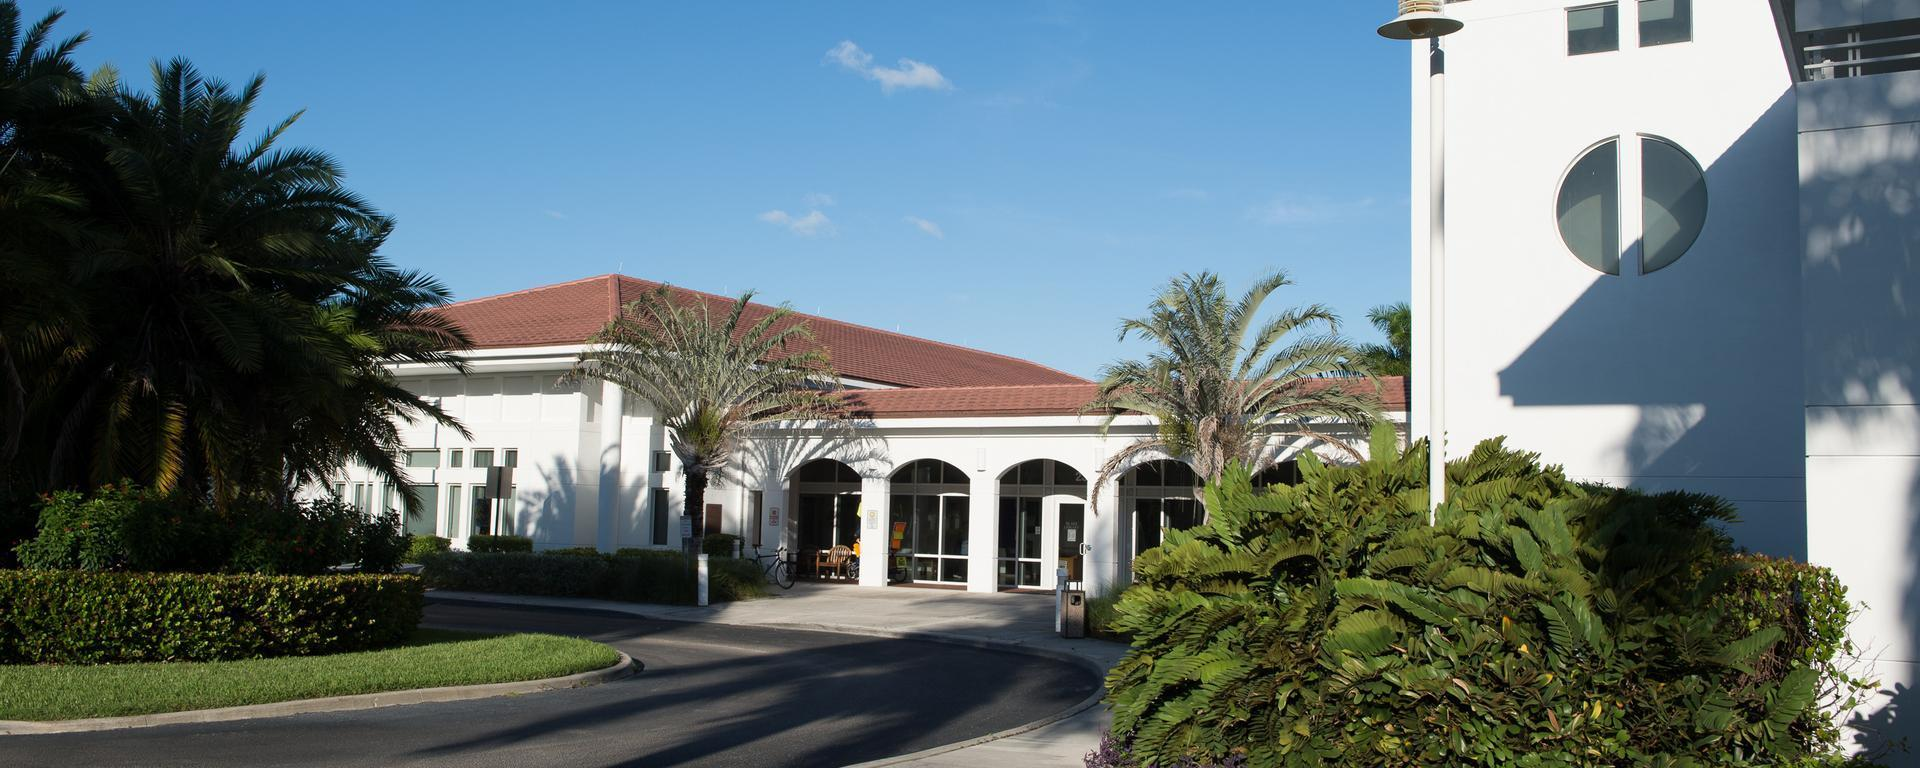 Exterior of the Blake library in Stuart